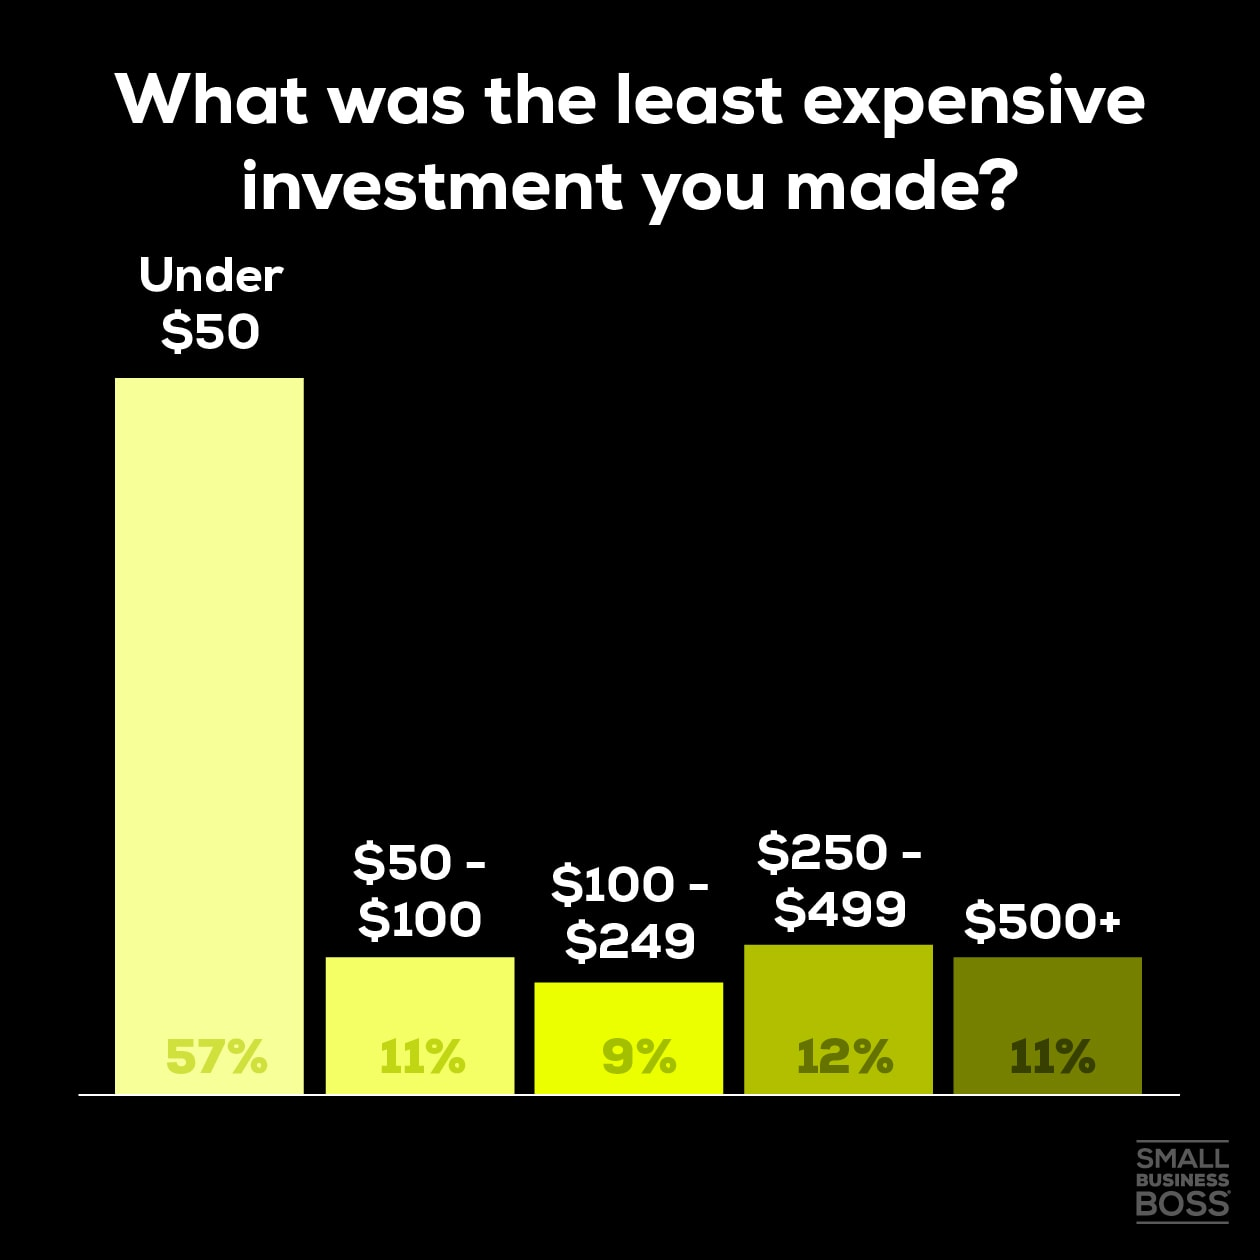 Least expensive investment